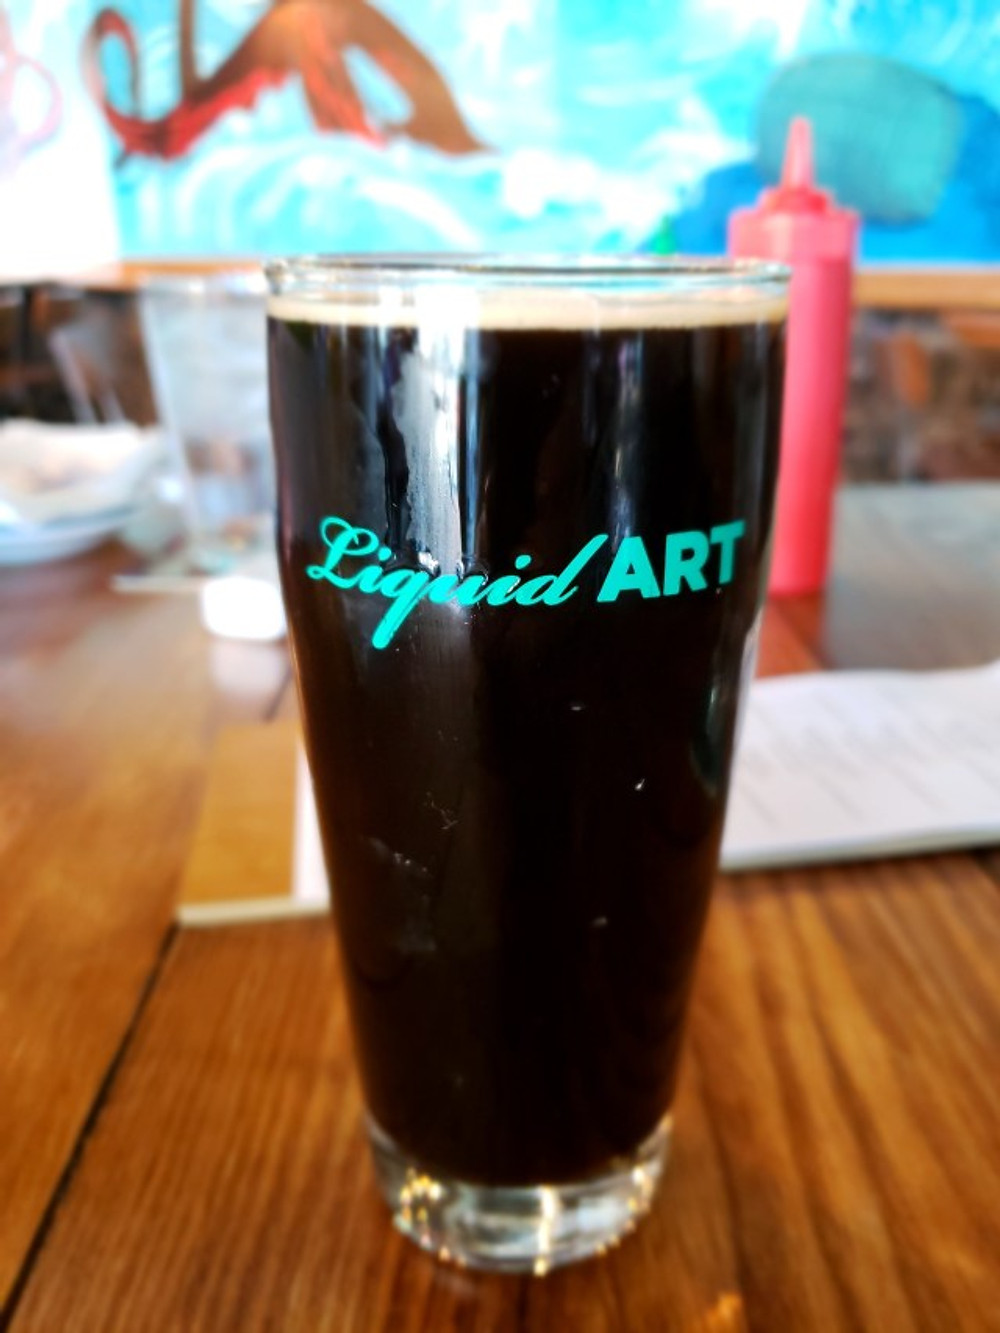 A pint of beer from Roy-Pitz Barrel House.